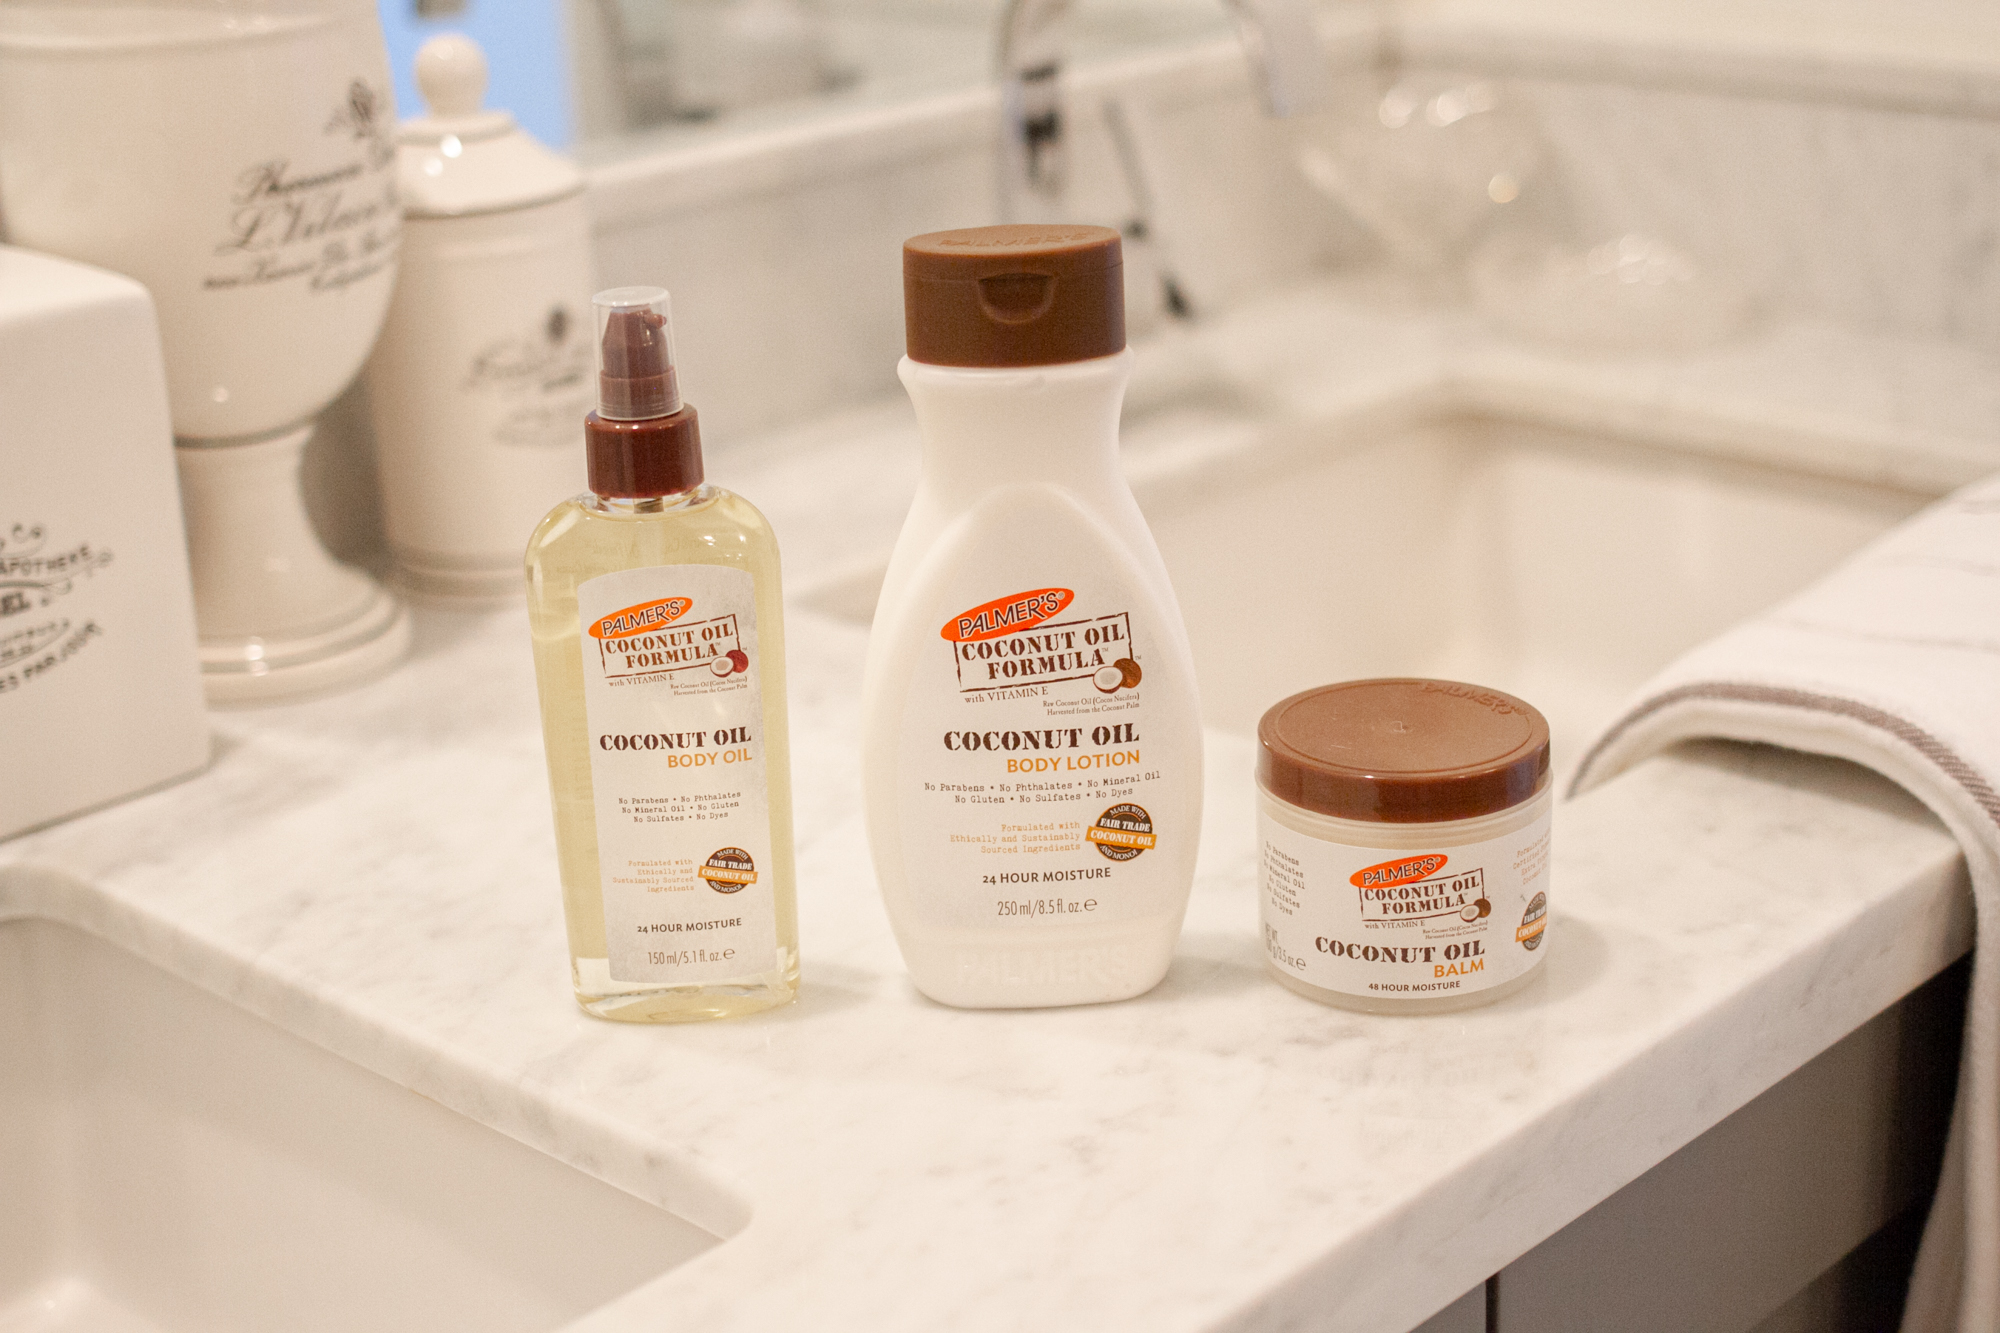 Palmer's Coconut Oil Formula winter skin care products in bathroom